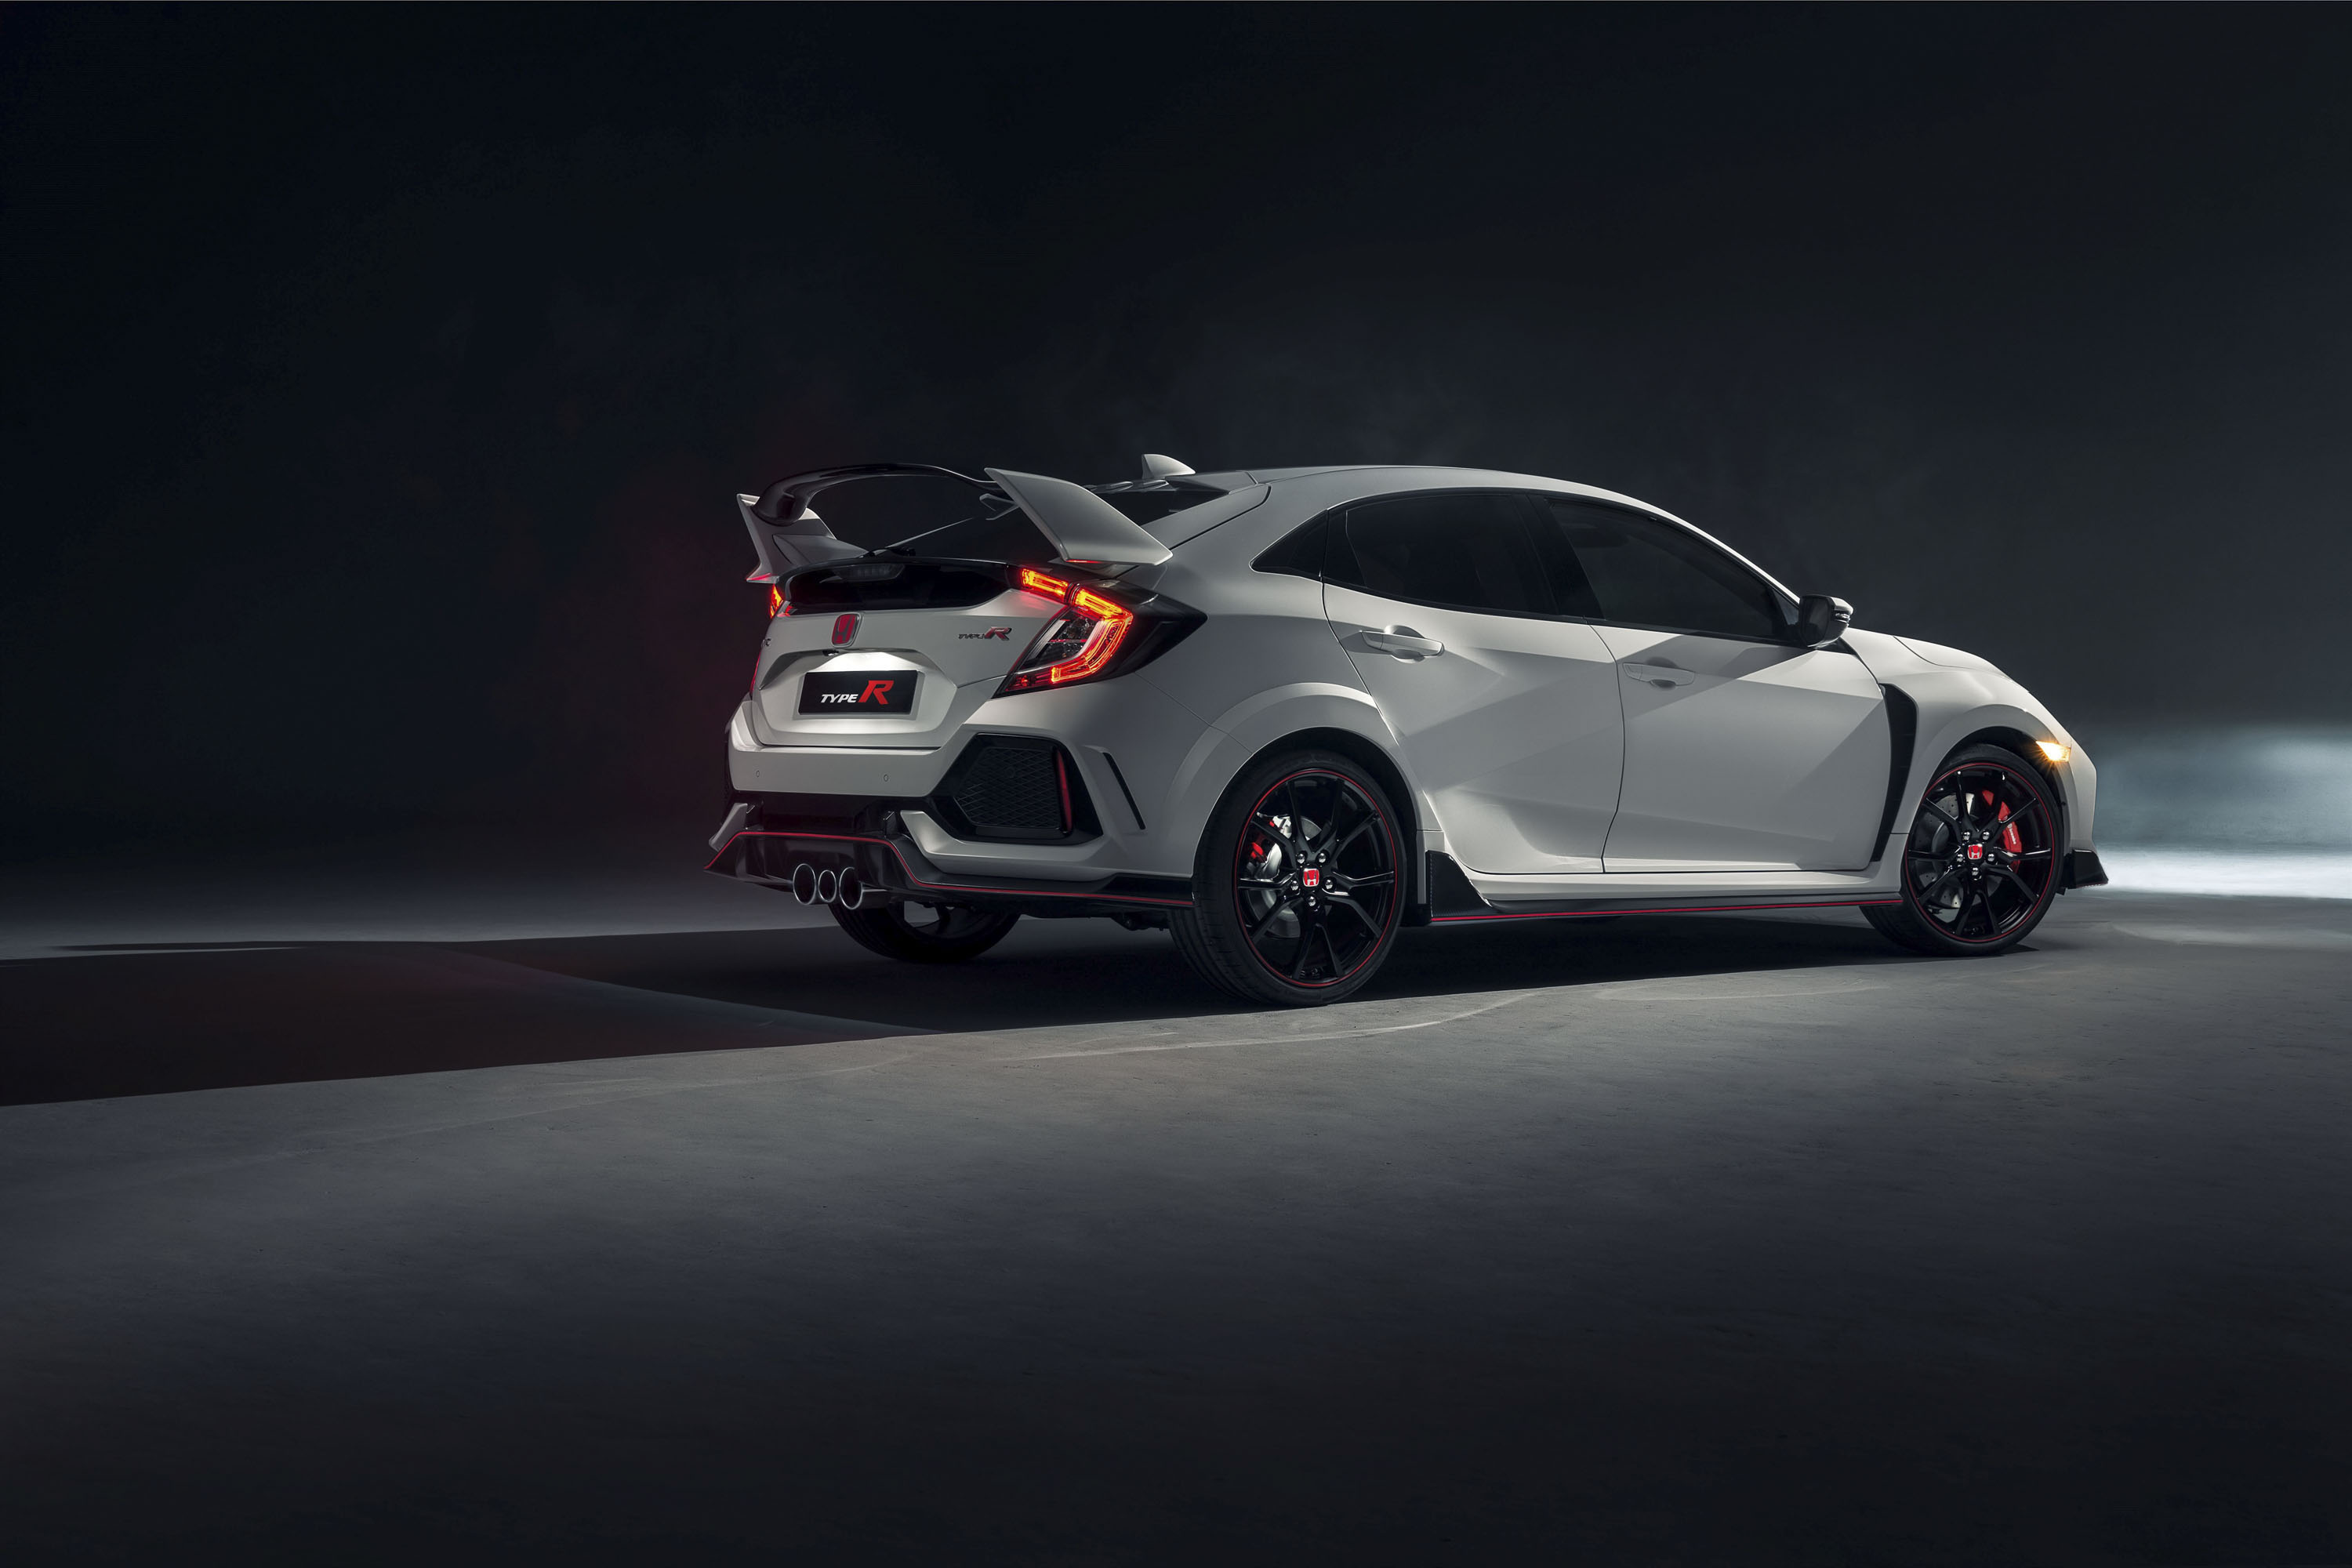 2017 civic hatchback 0-60